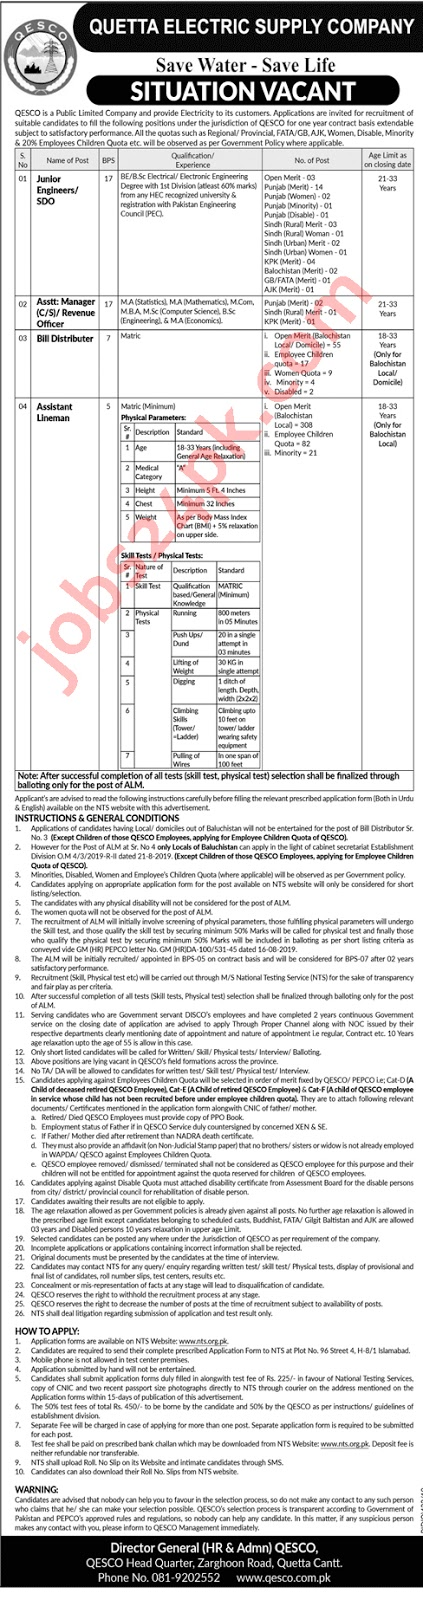 new-wapda-jobs-qesco-nts-jobs